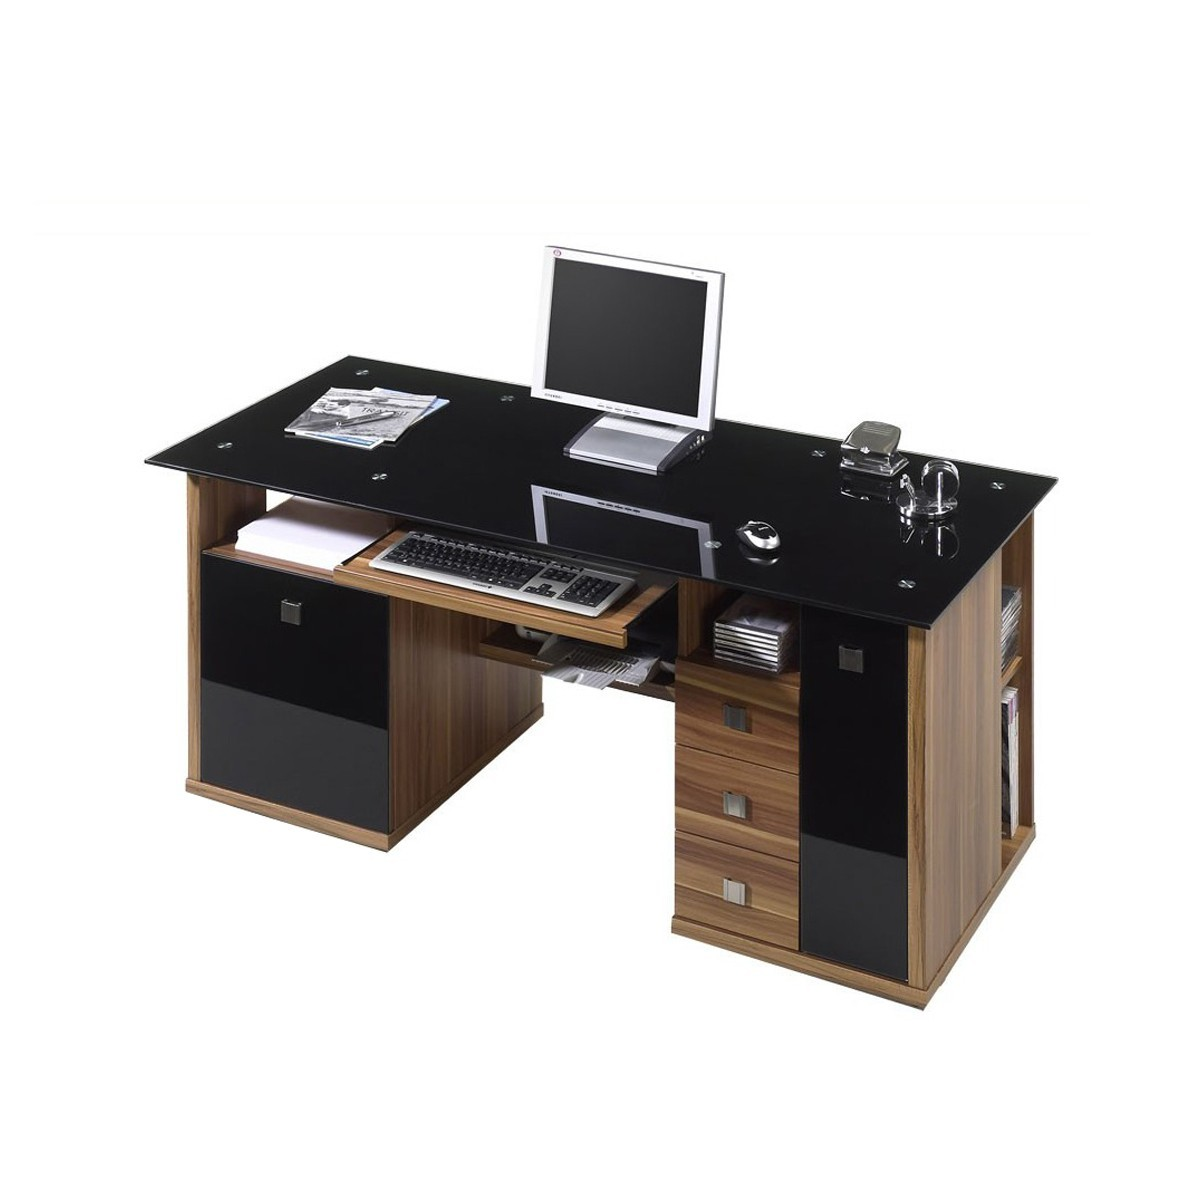 schreibtisch jenko ii in nussbaum mit schwarzglas m bel ideal online shop. Black Bedroom Furniture Sets. Home Design Ideas